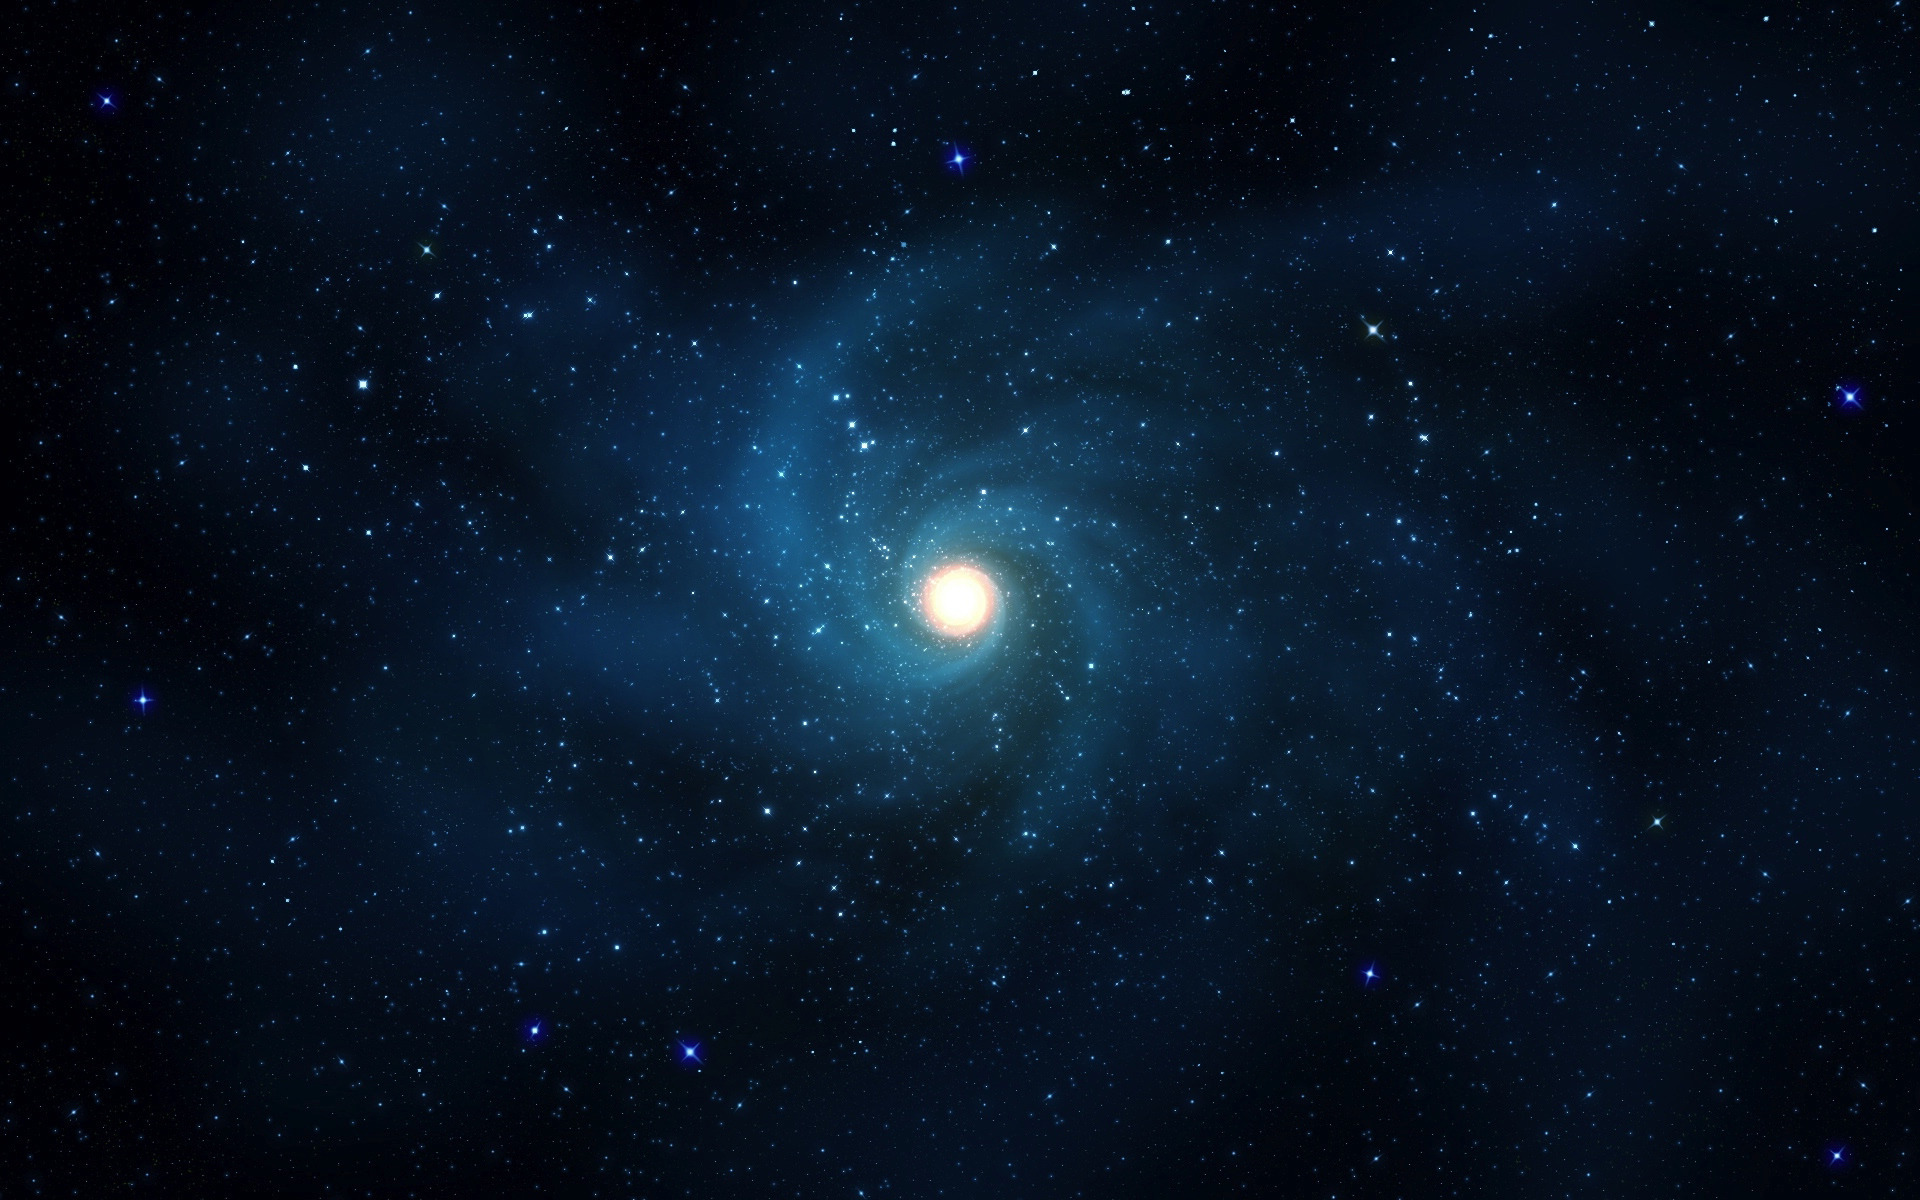 Spiral galaxy wallpaper 2488 1920x1200